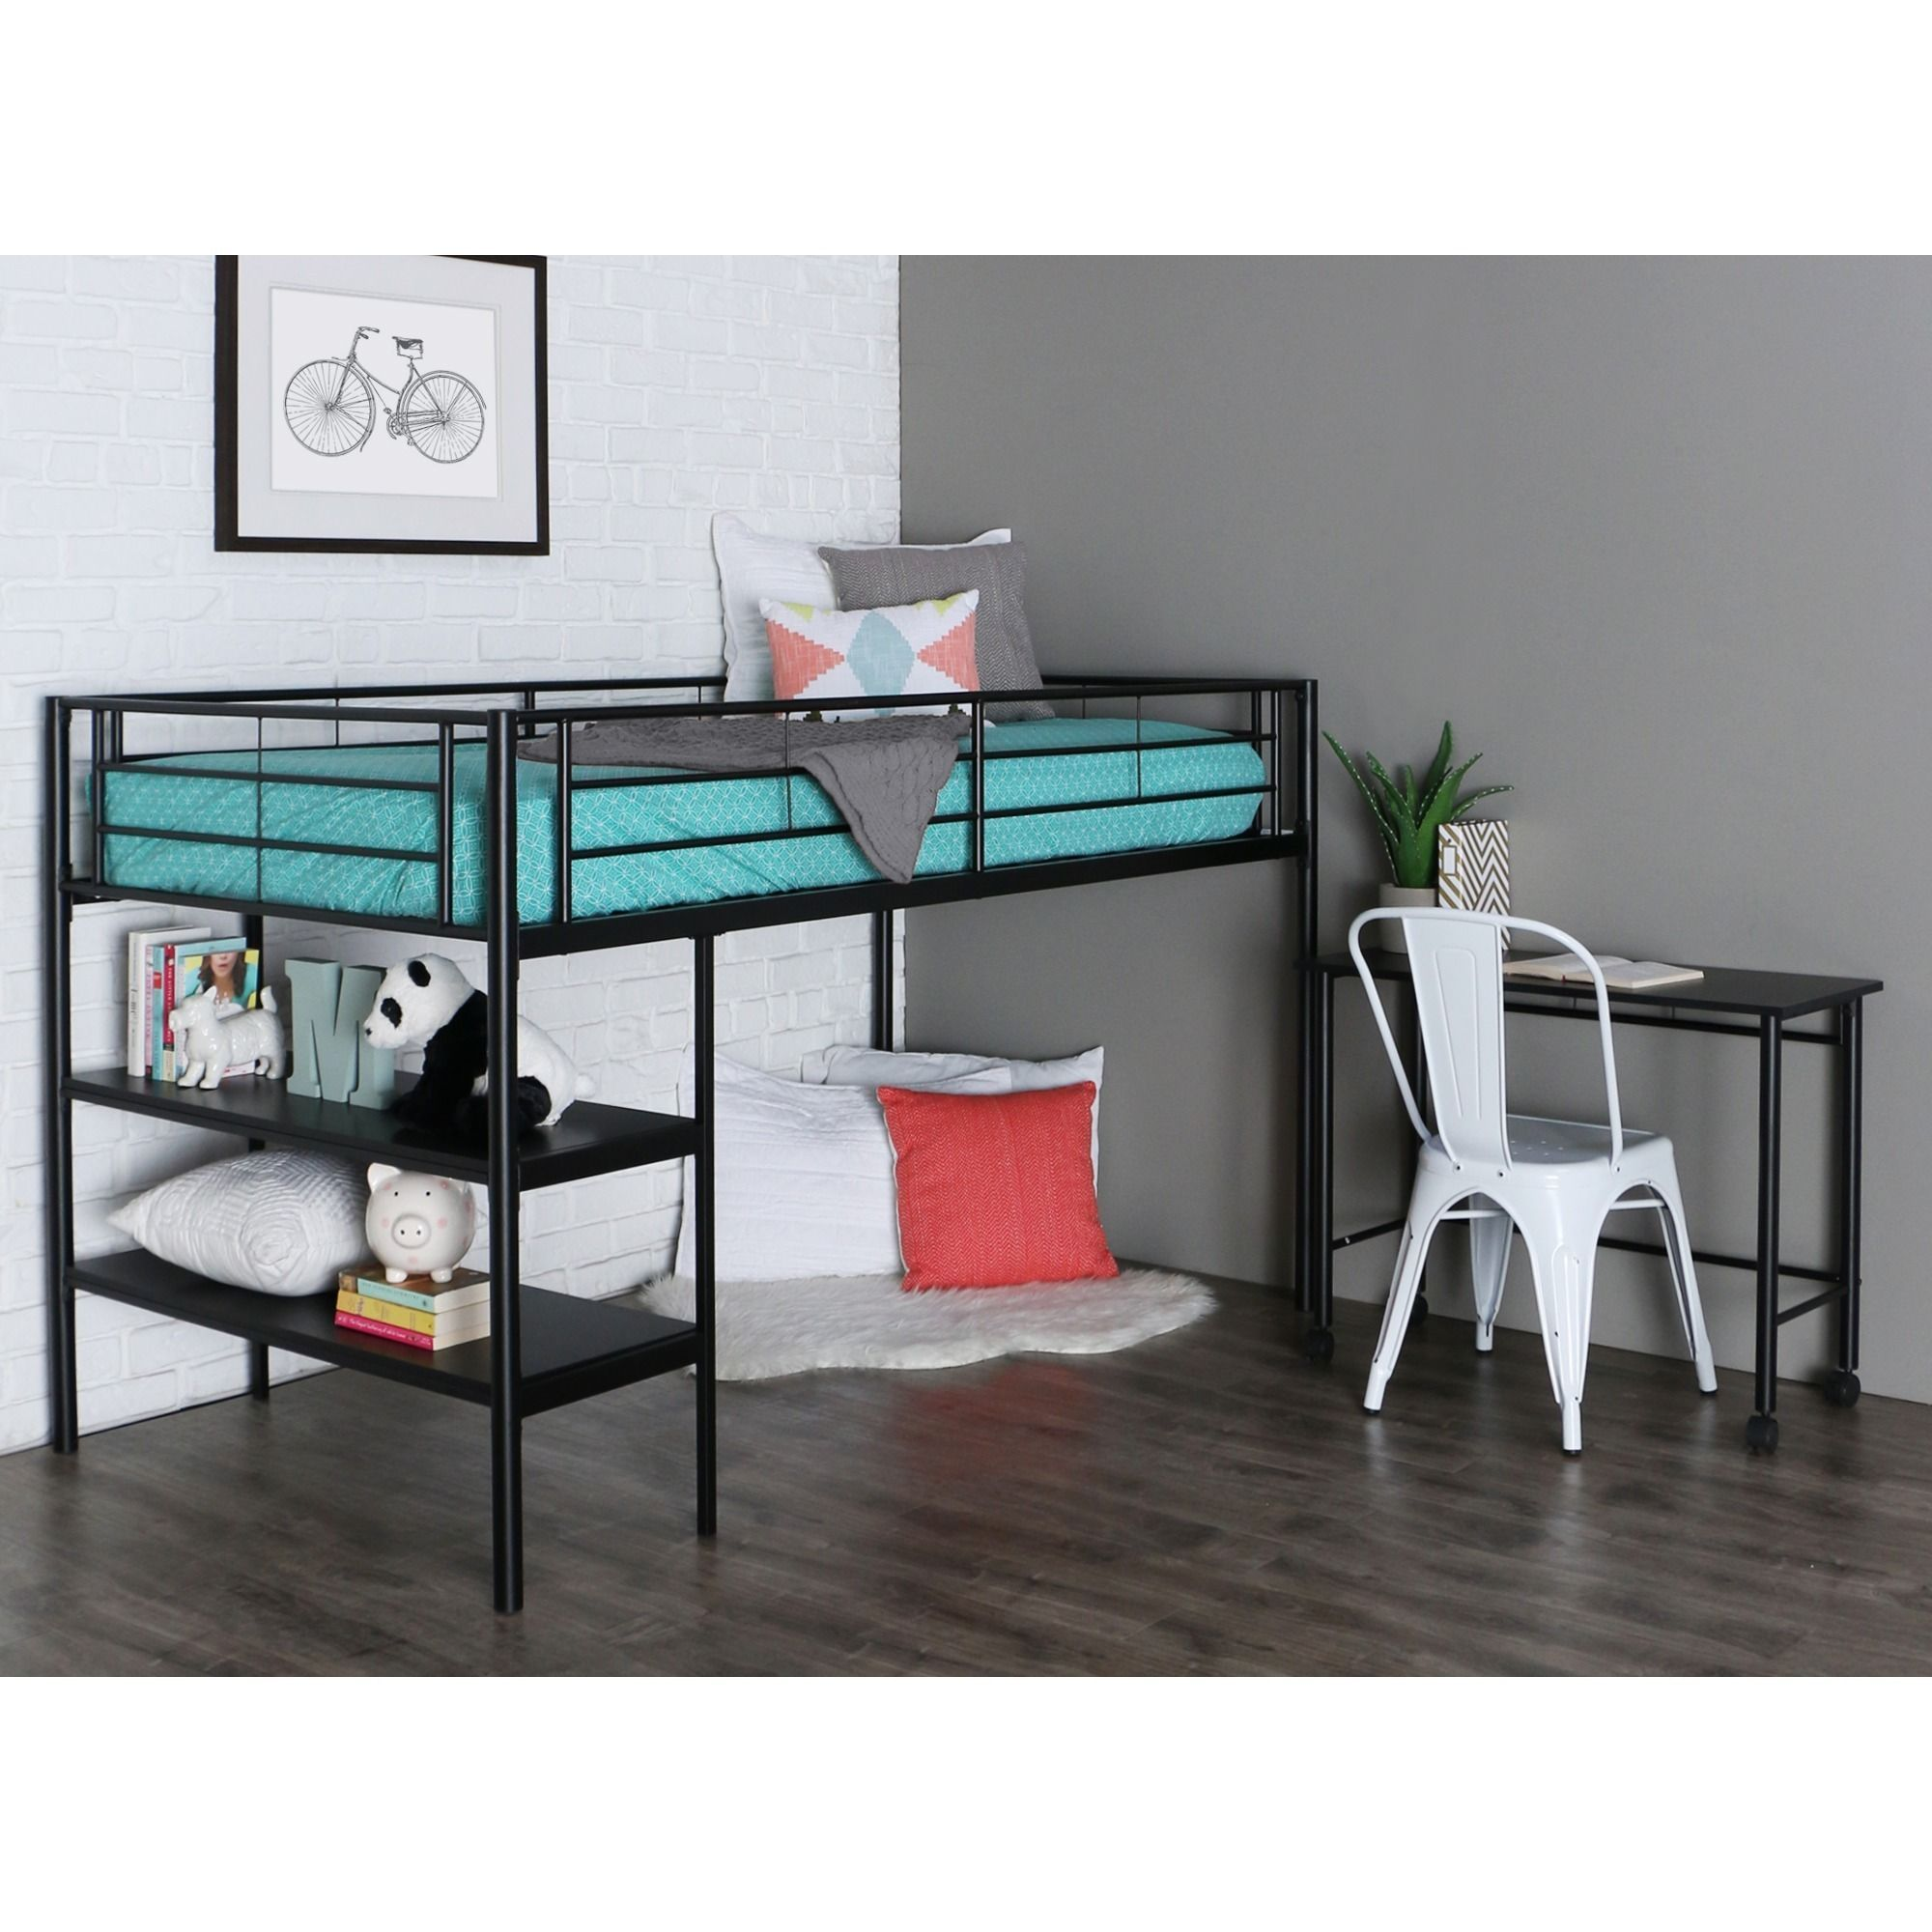 Grey loft bed with desk  Maximize space in any bedroom with this spacesaving loft bed set